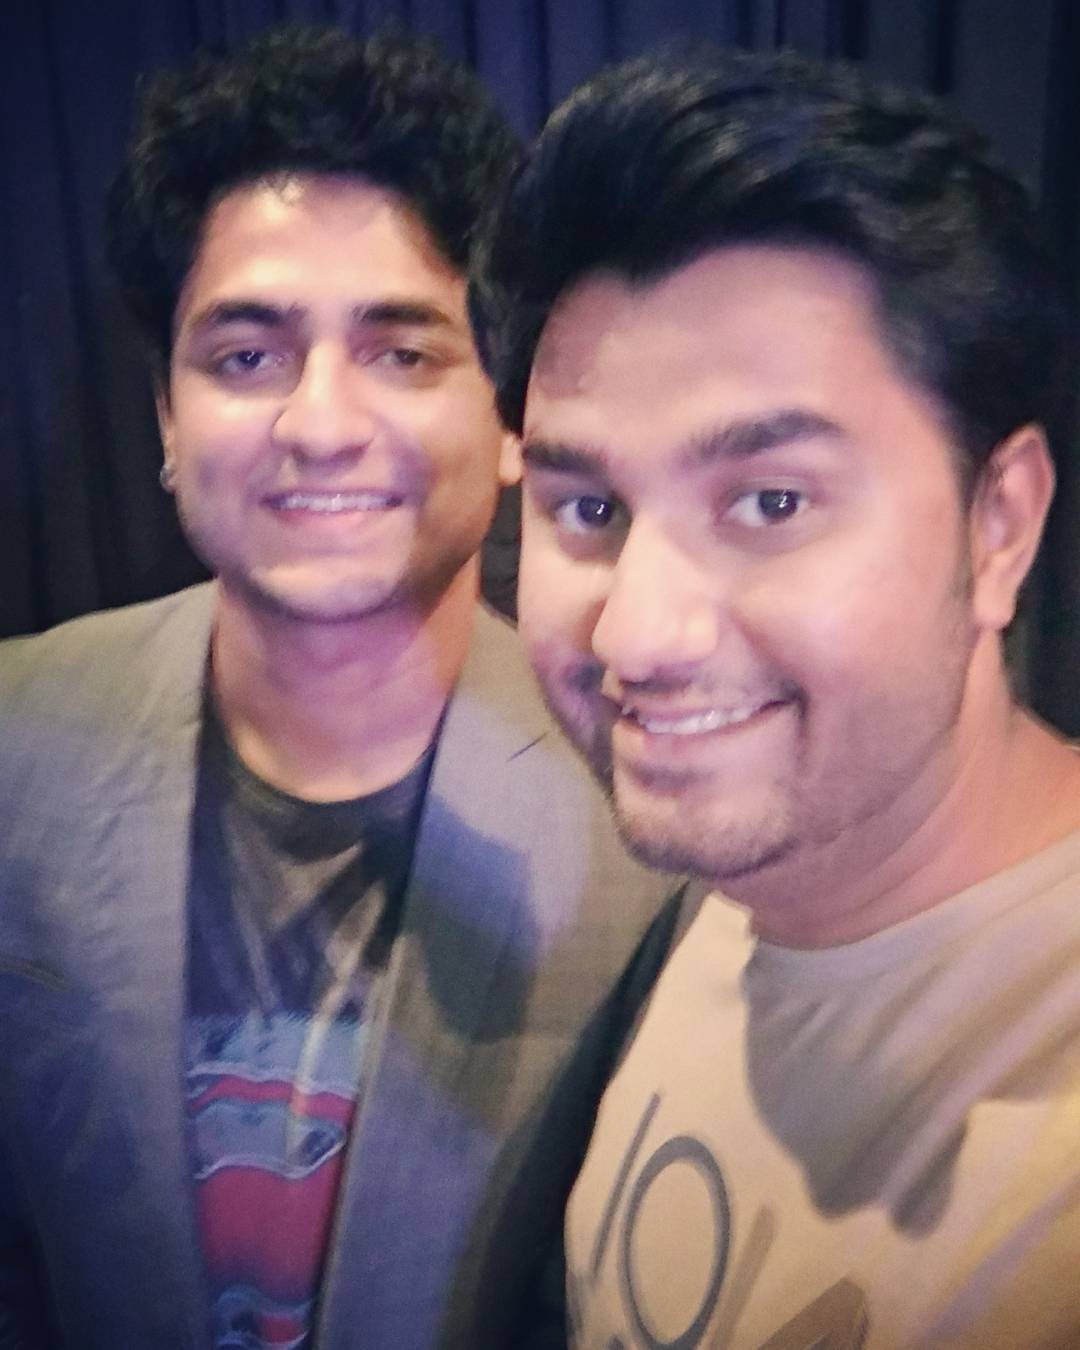 One of the best and well written Standup Show i have seen till now. #kennysebastian